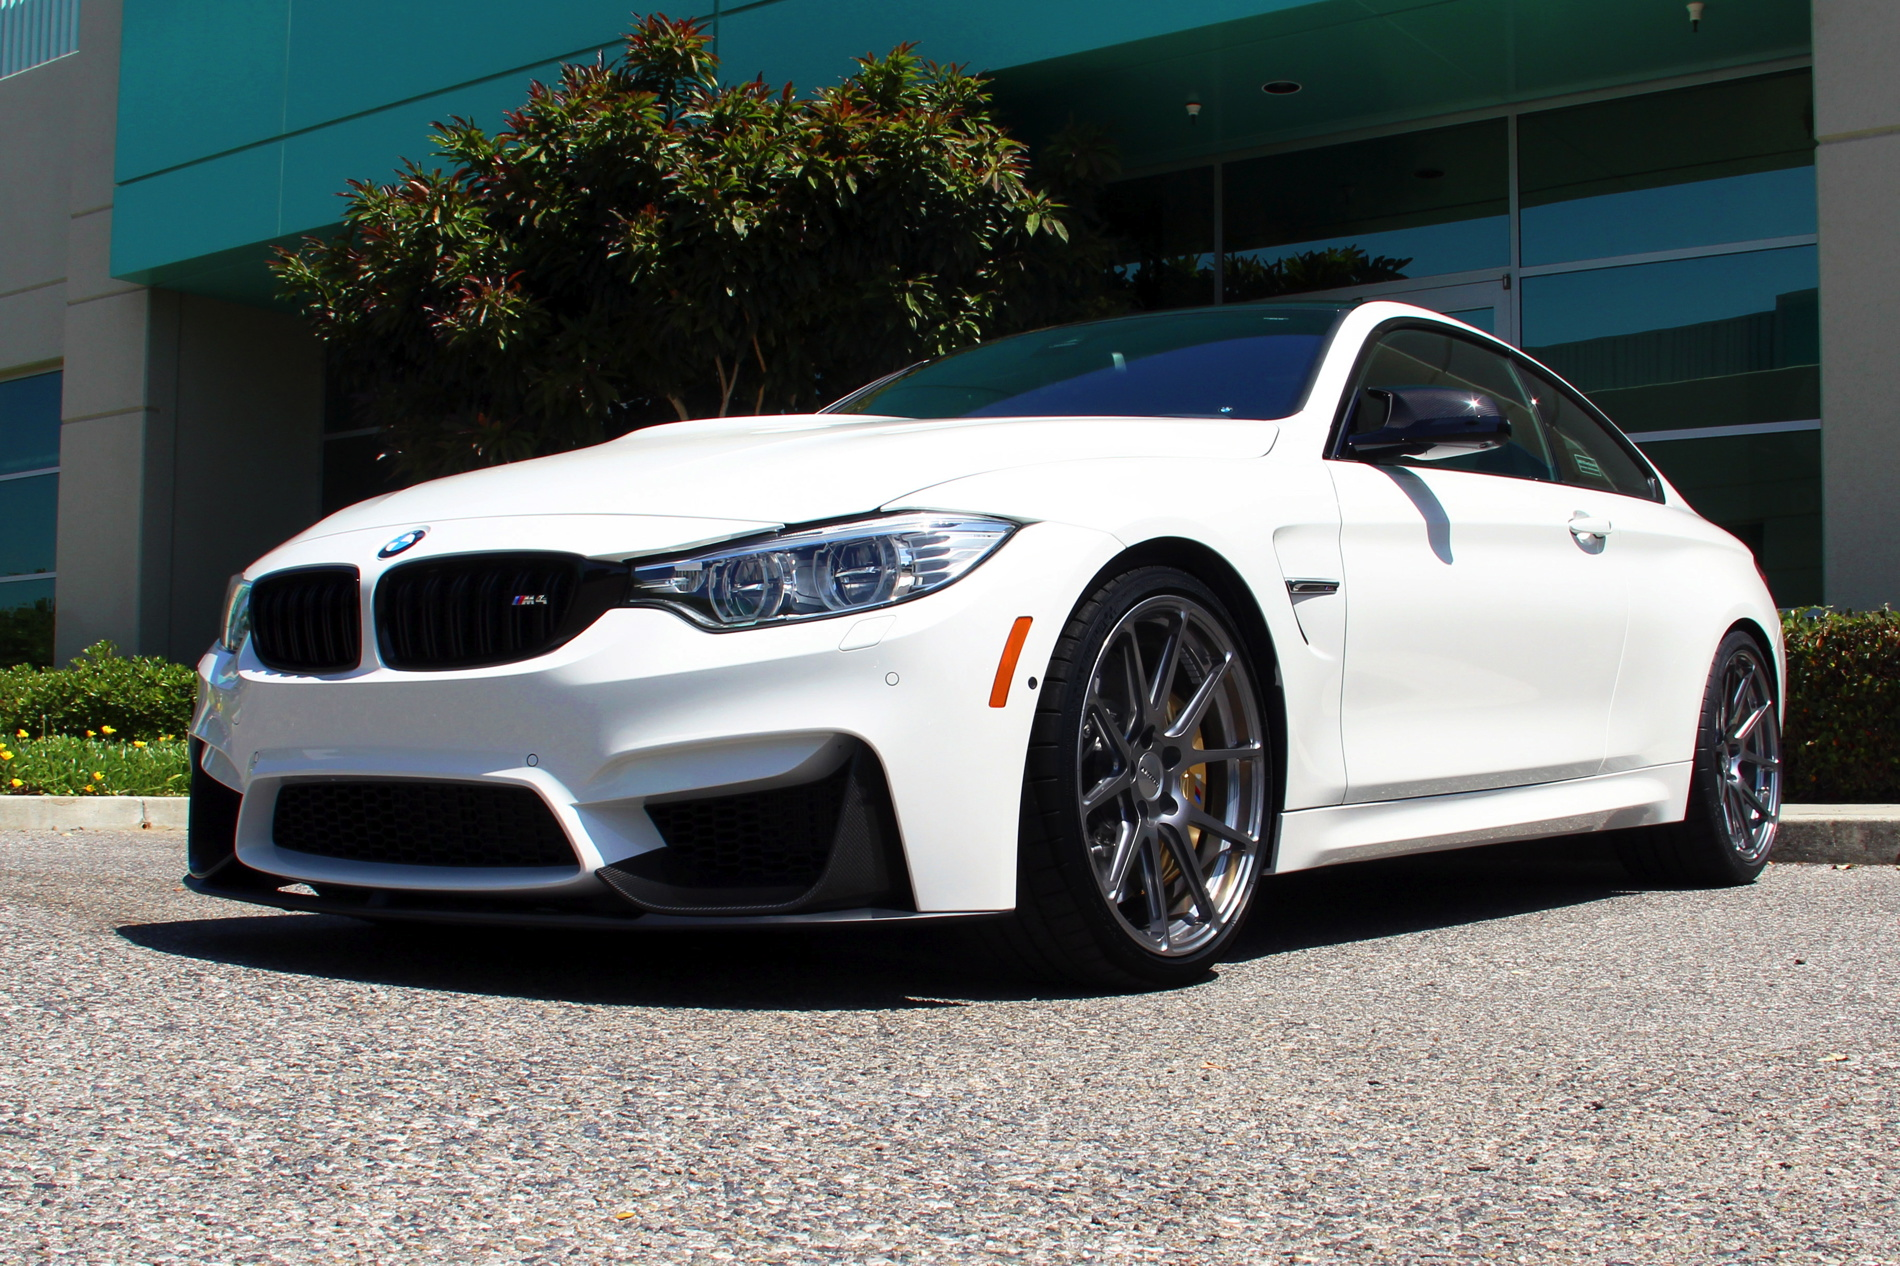 Bmw Cca Will Raffle A Special Dinan Club Edition Bmw M4 Coupe